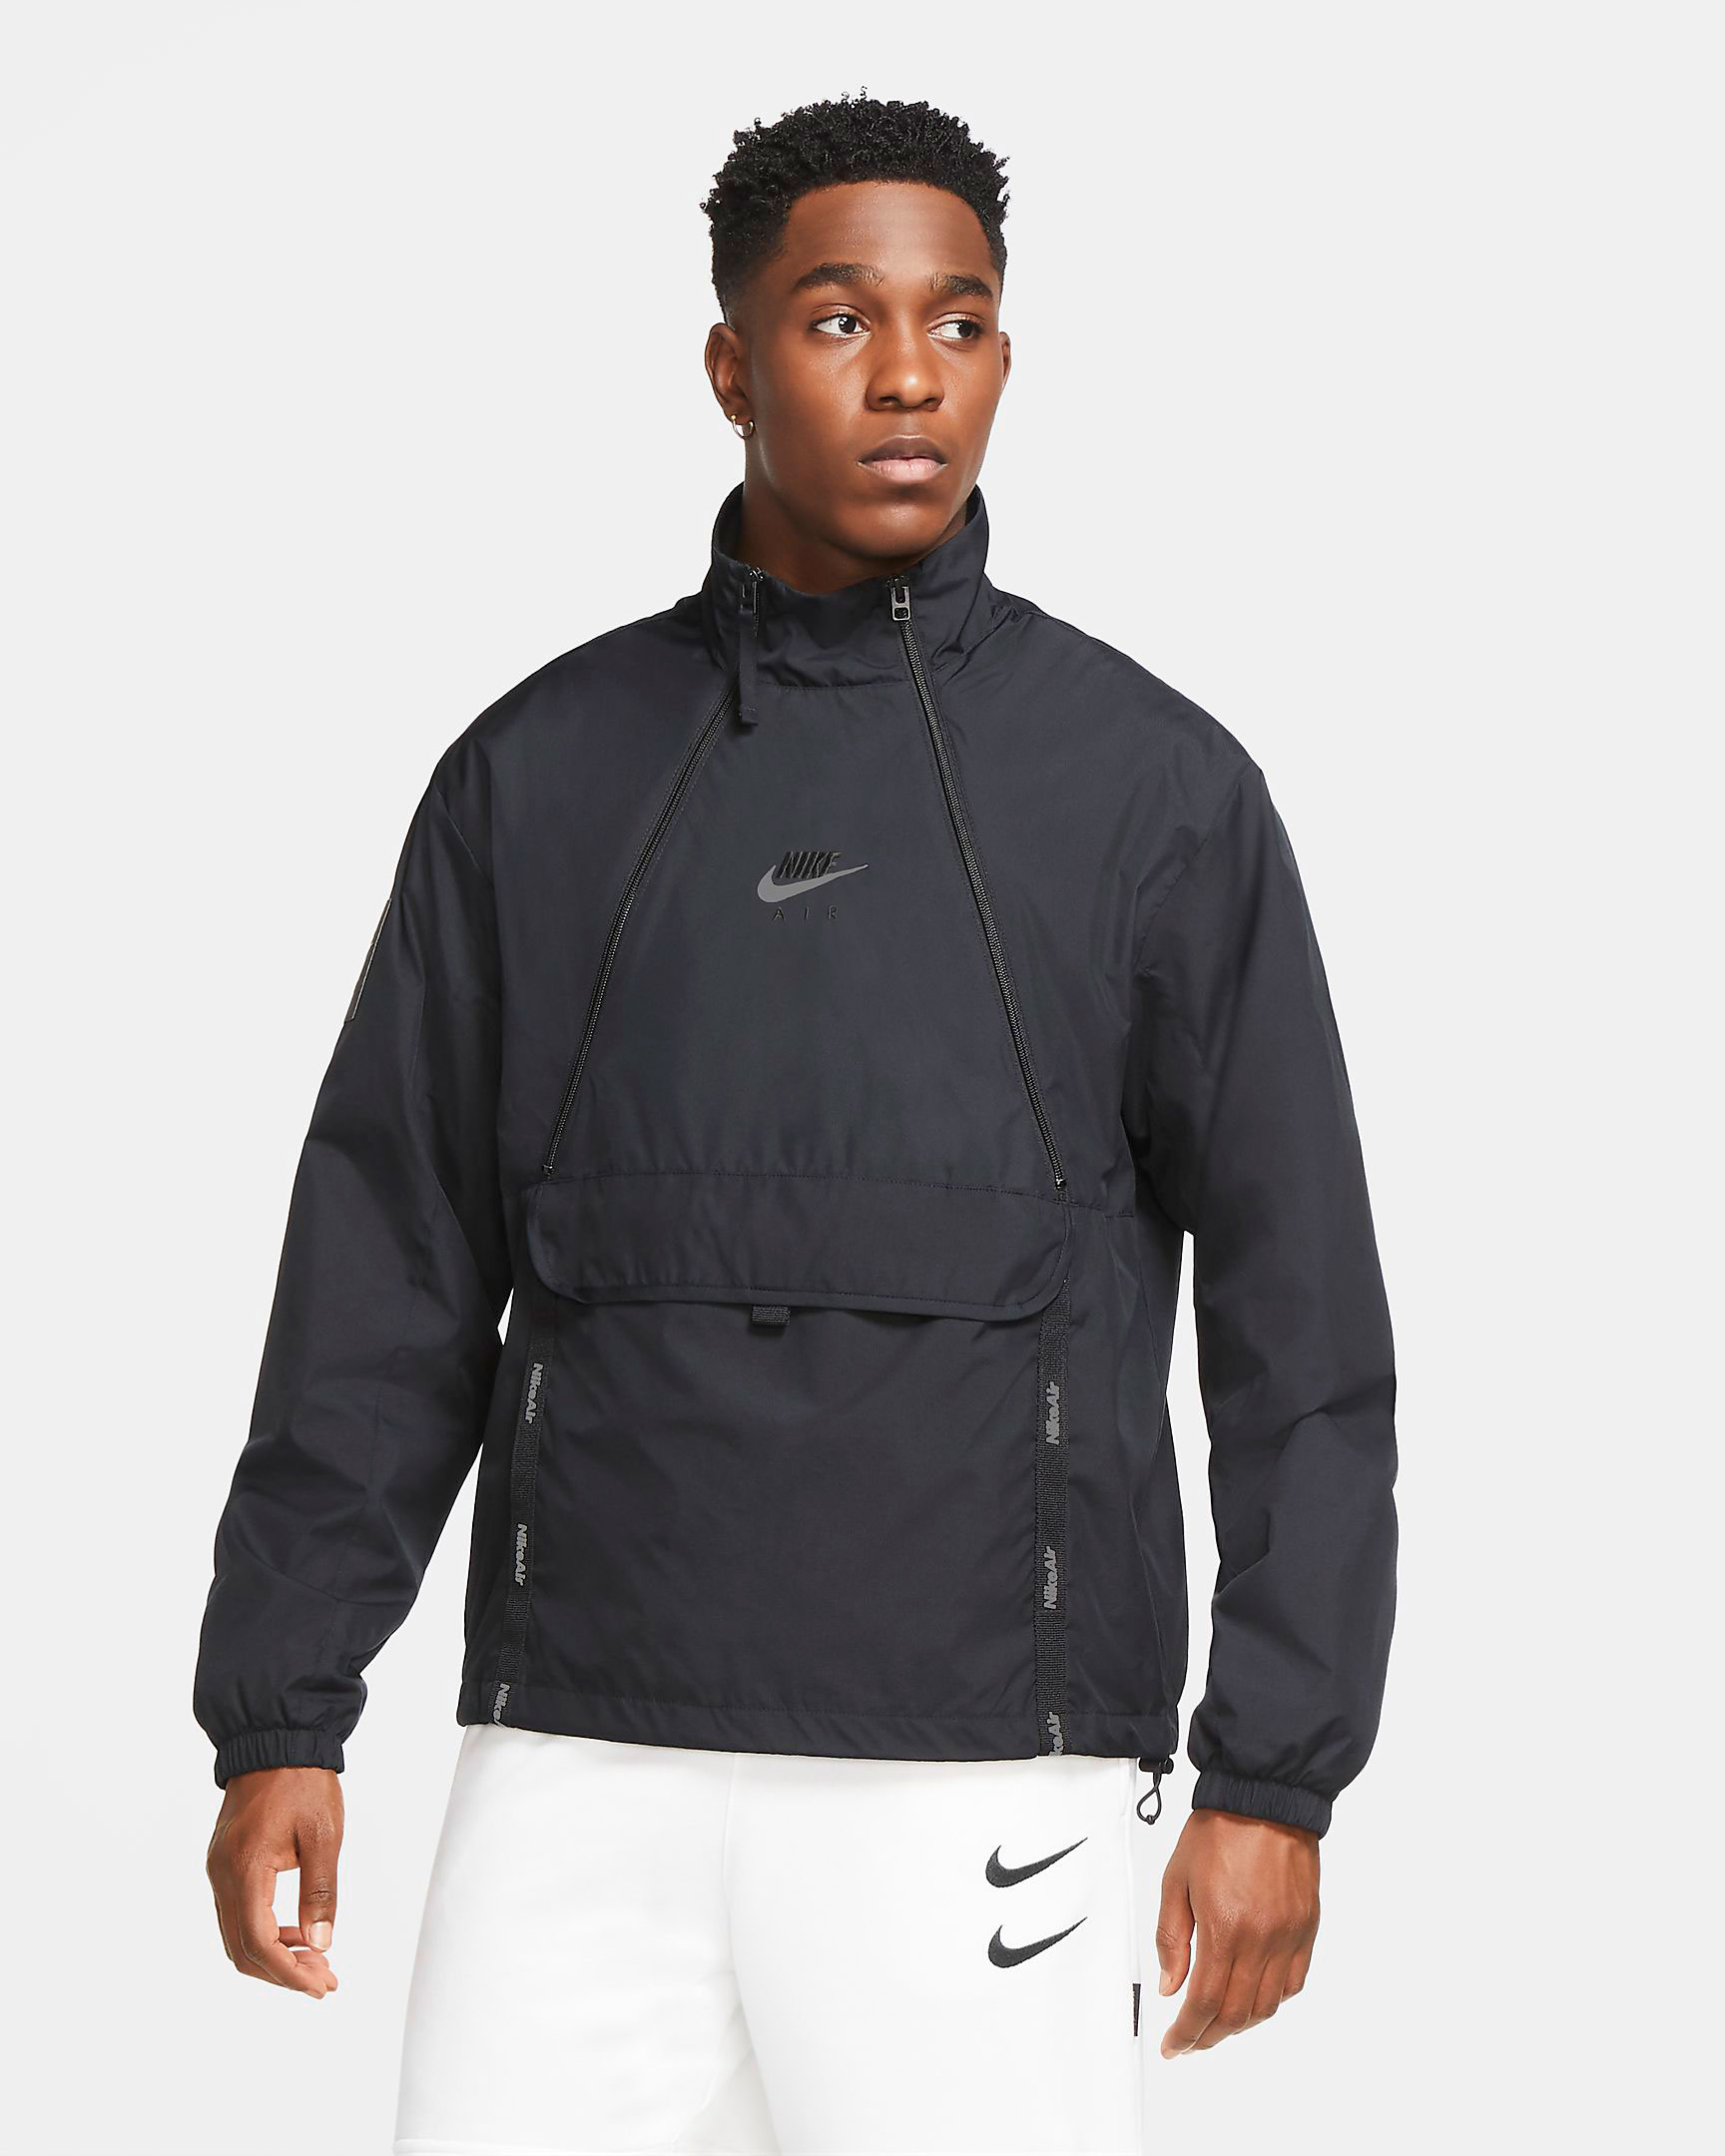 nike-air-utility-reflective-jacket-black-1